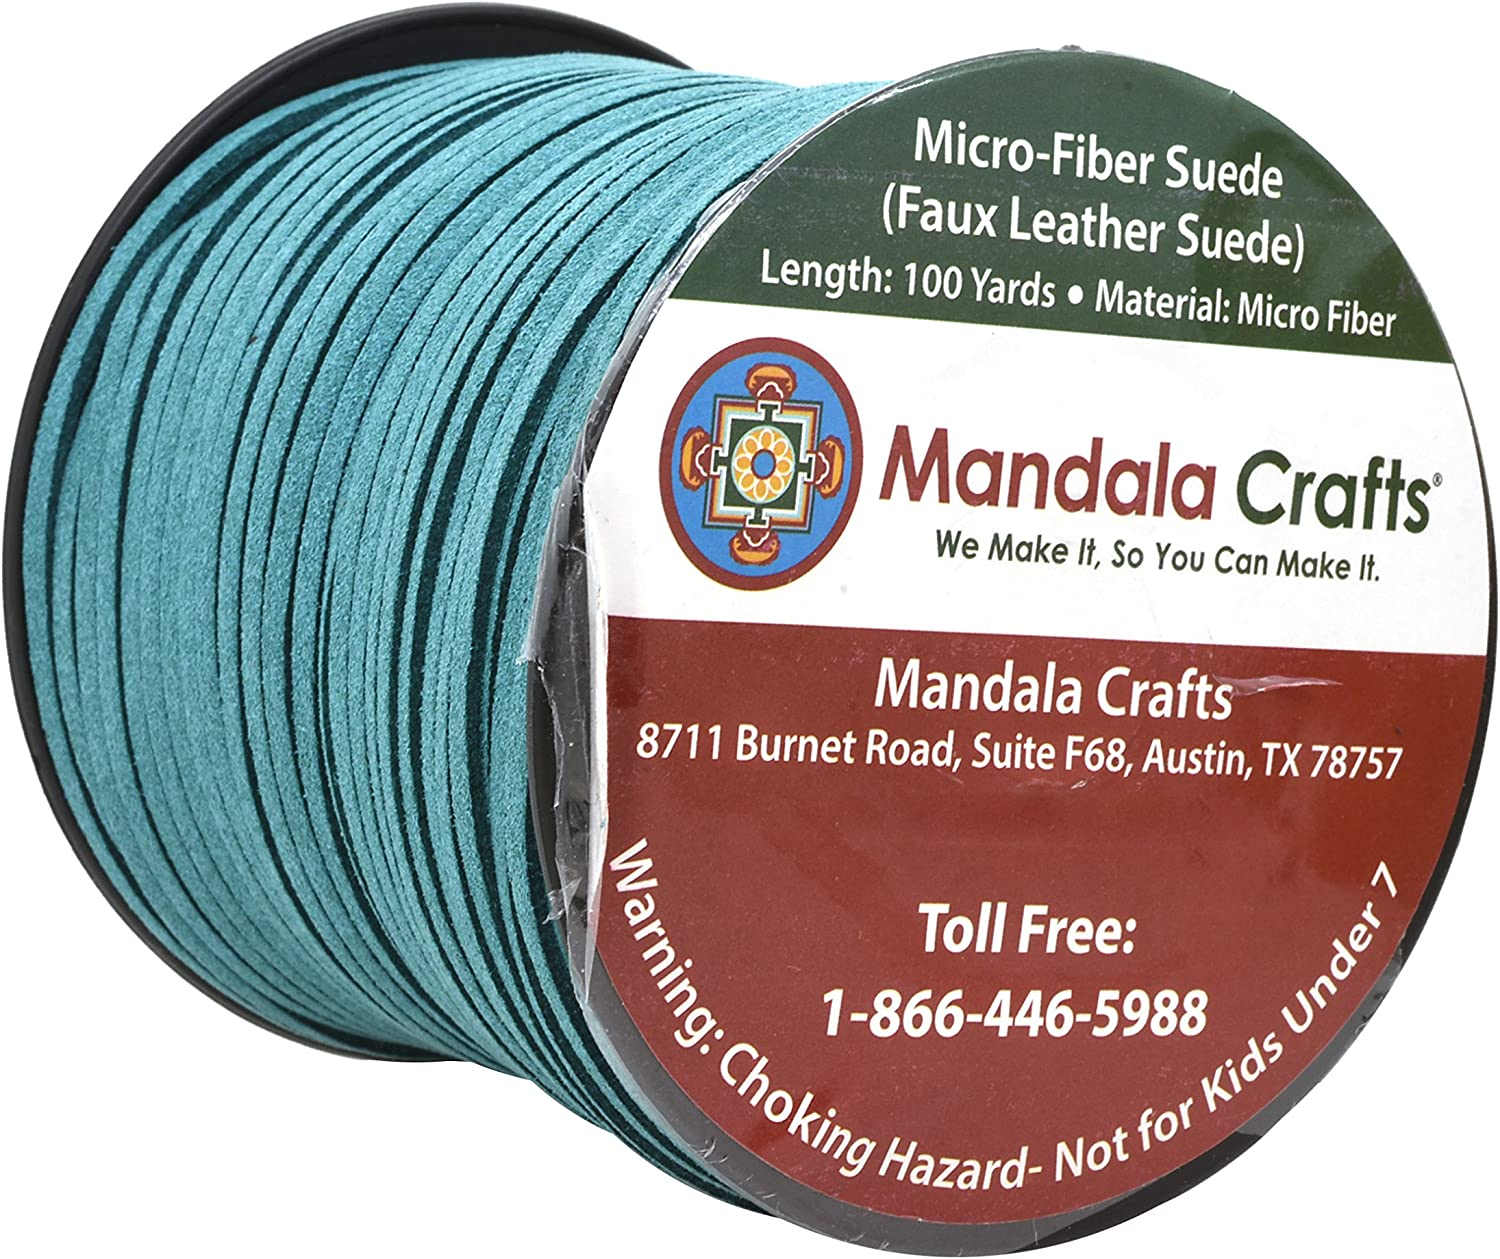 Mandala Crafts 100 Yards 2.65mm Wide Jewelry Making Flat Micro Fiber Lace Faux Suede Leather Cord Beige